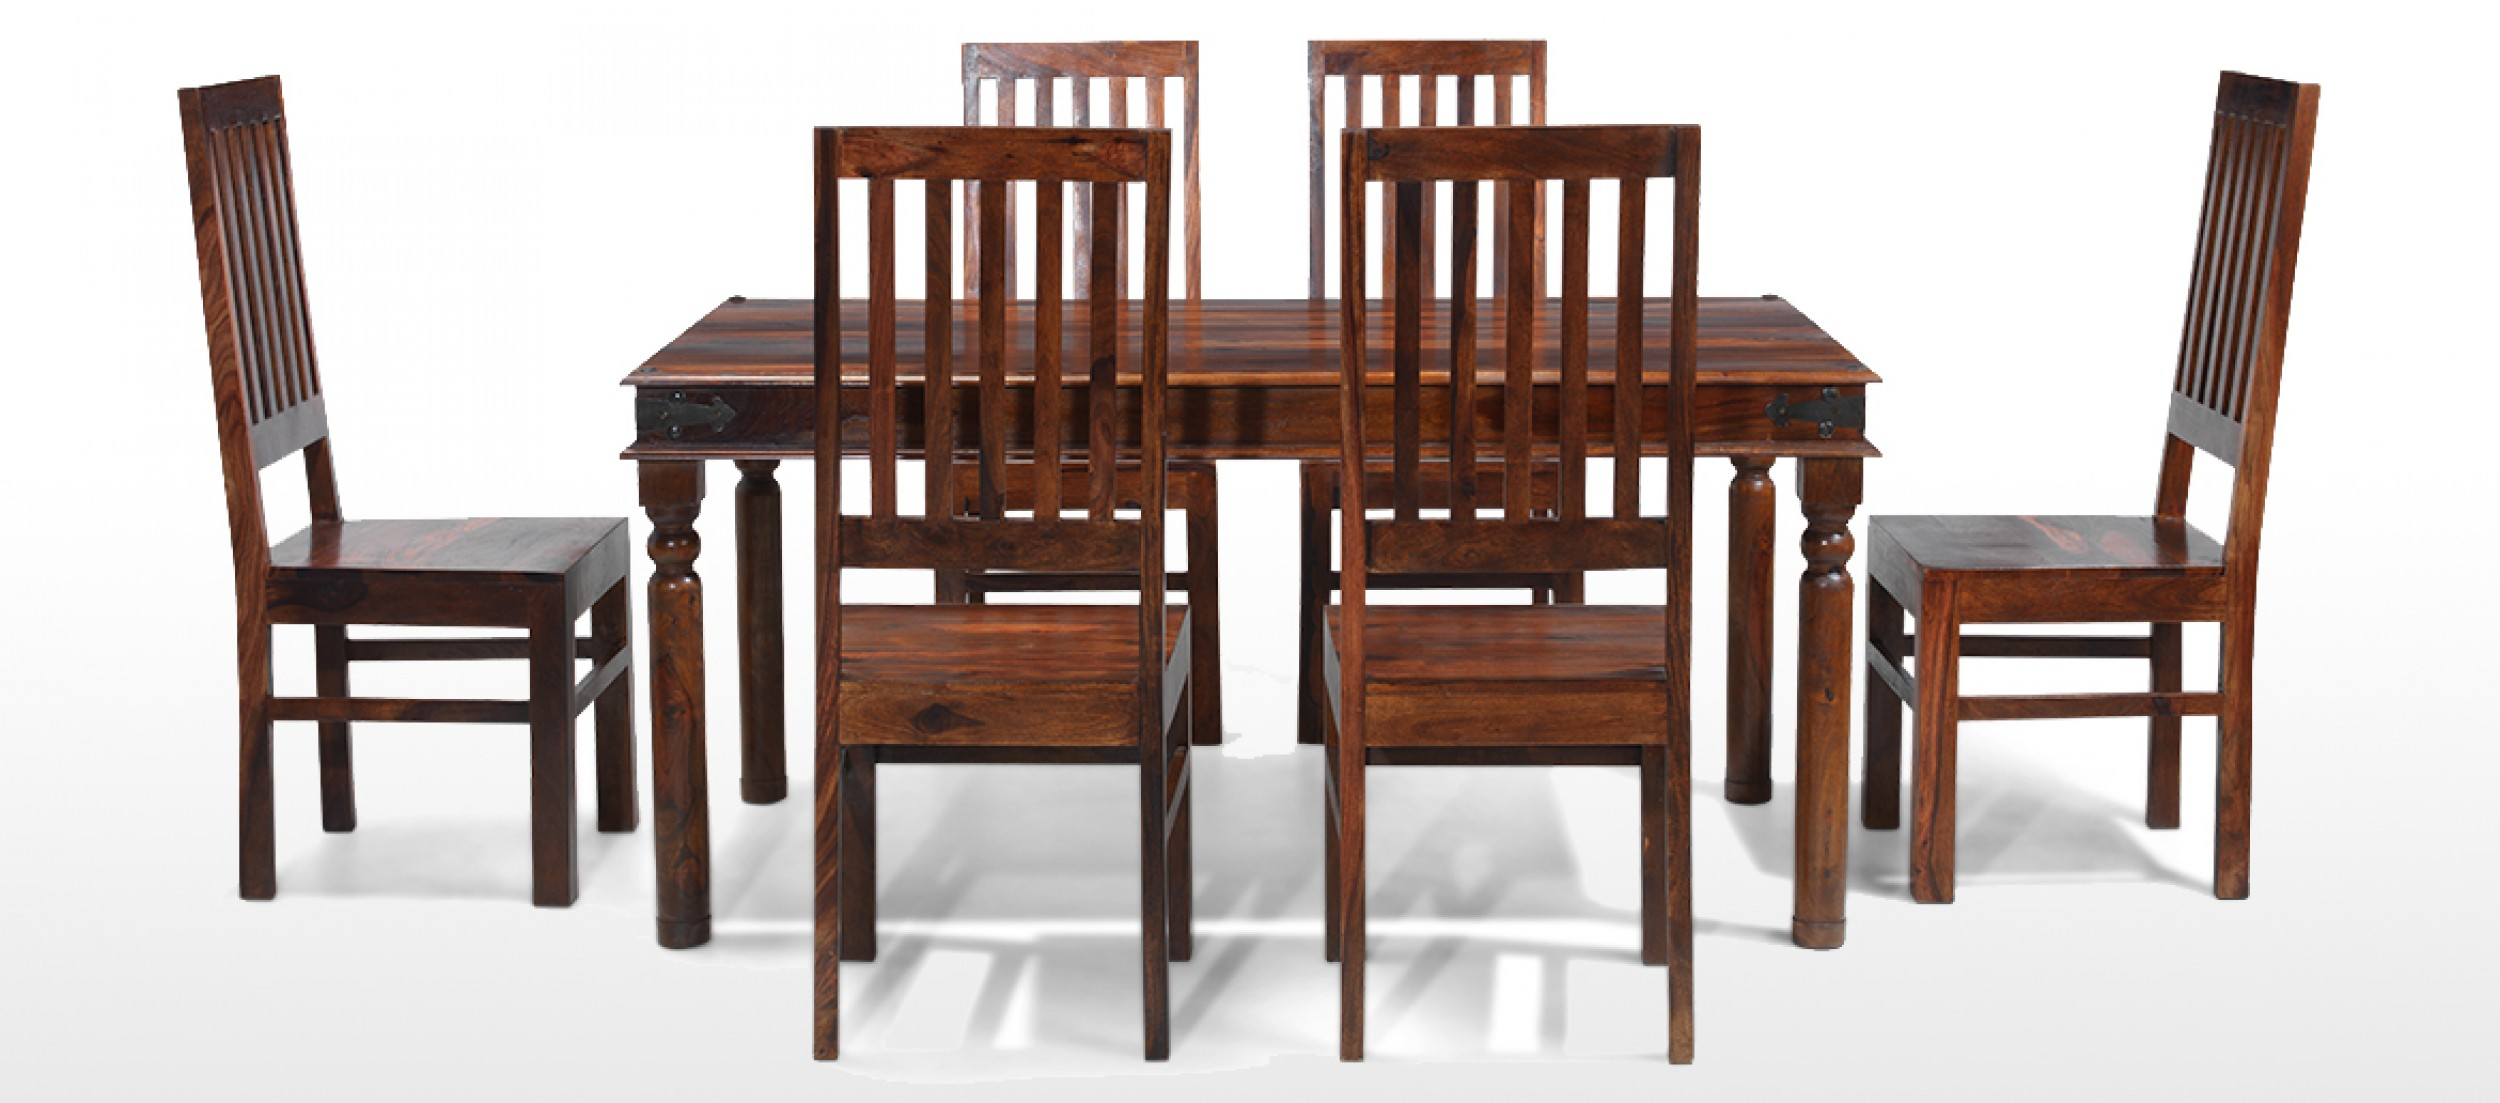 EBS Black Glass Dining Table Set and 6 Chairs Dining Room Furniture Set